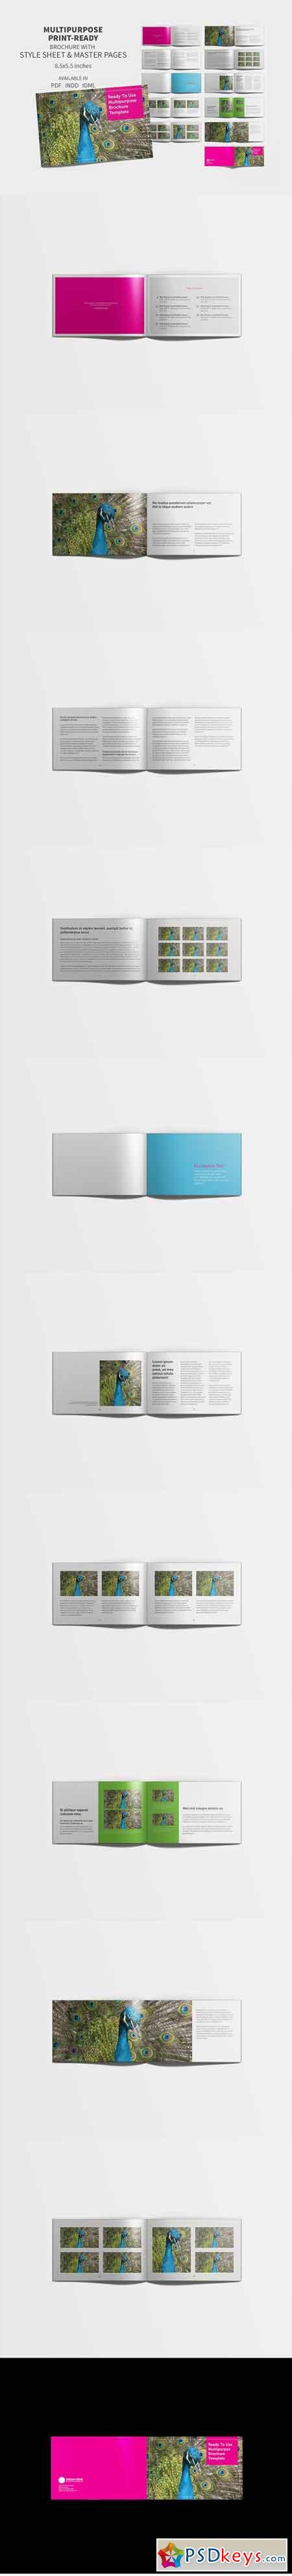 Multipurpose Brochure 1828170